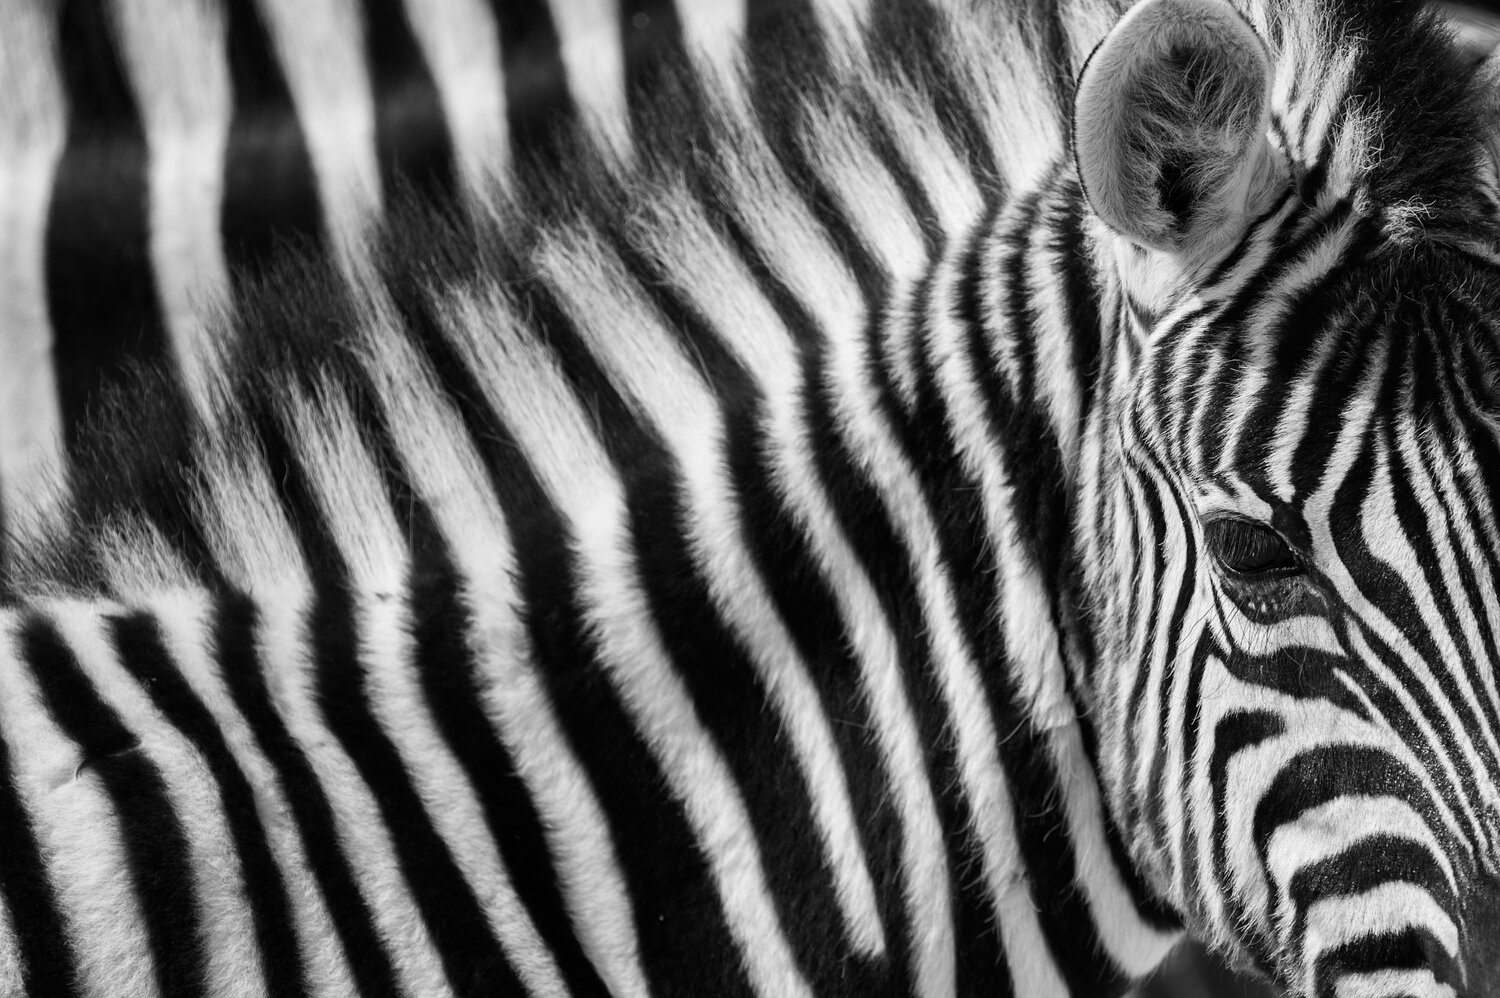 Zebra stripes black and white fine art